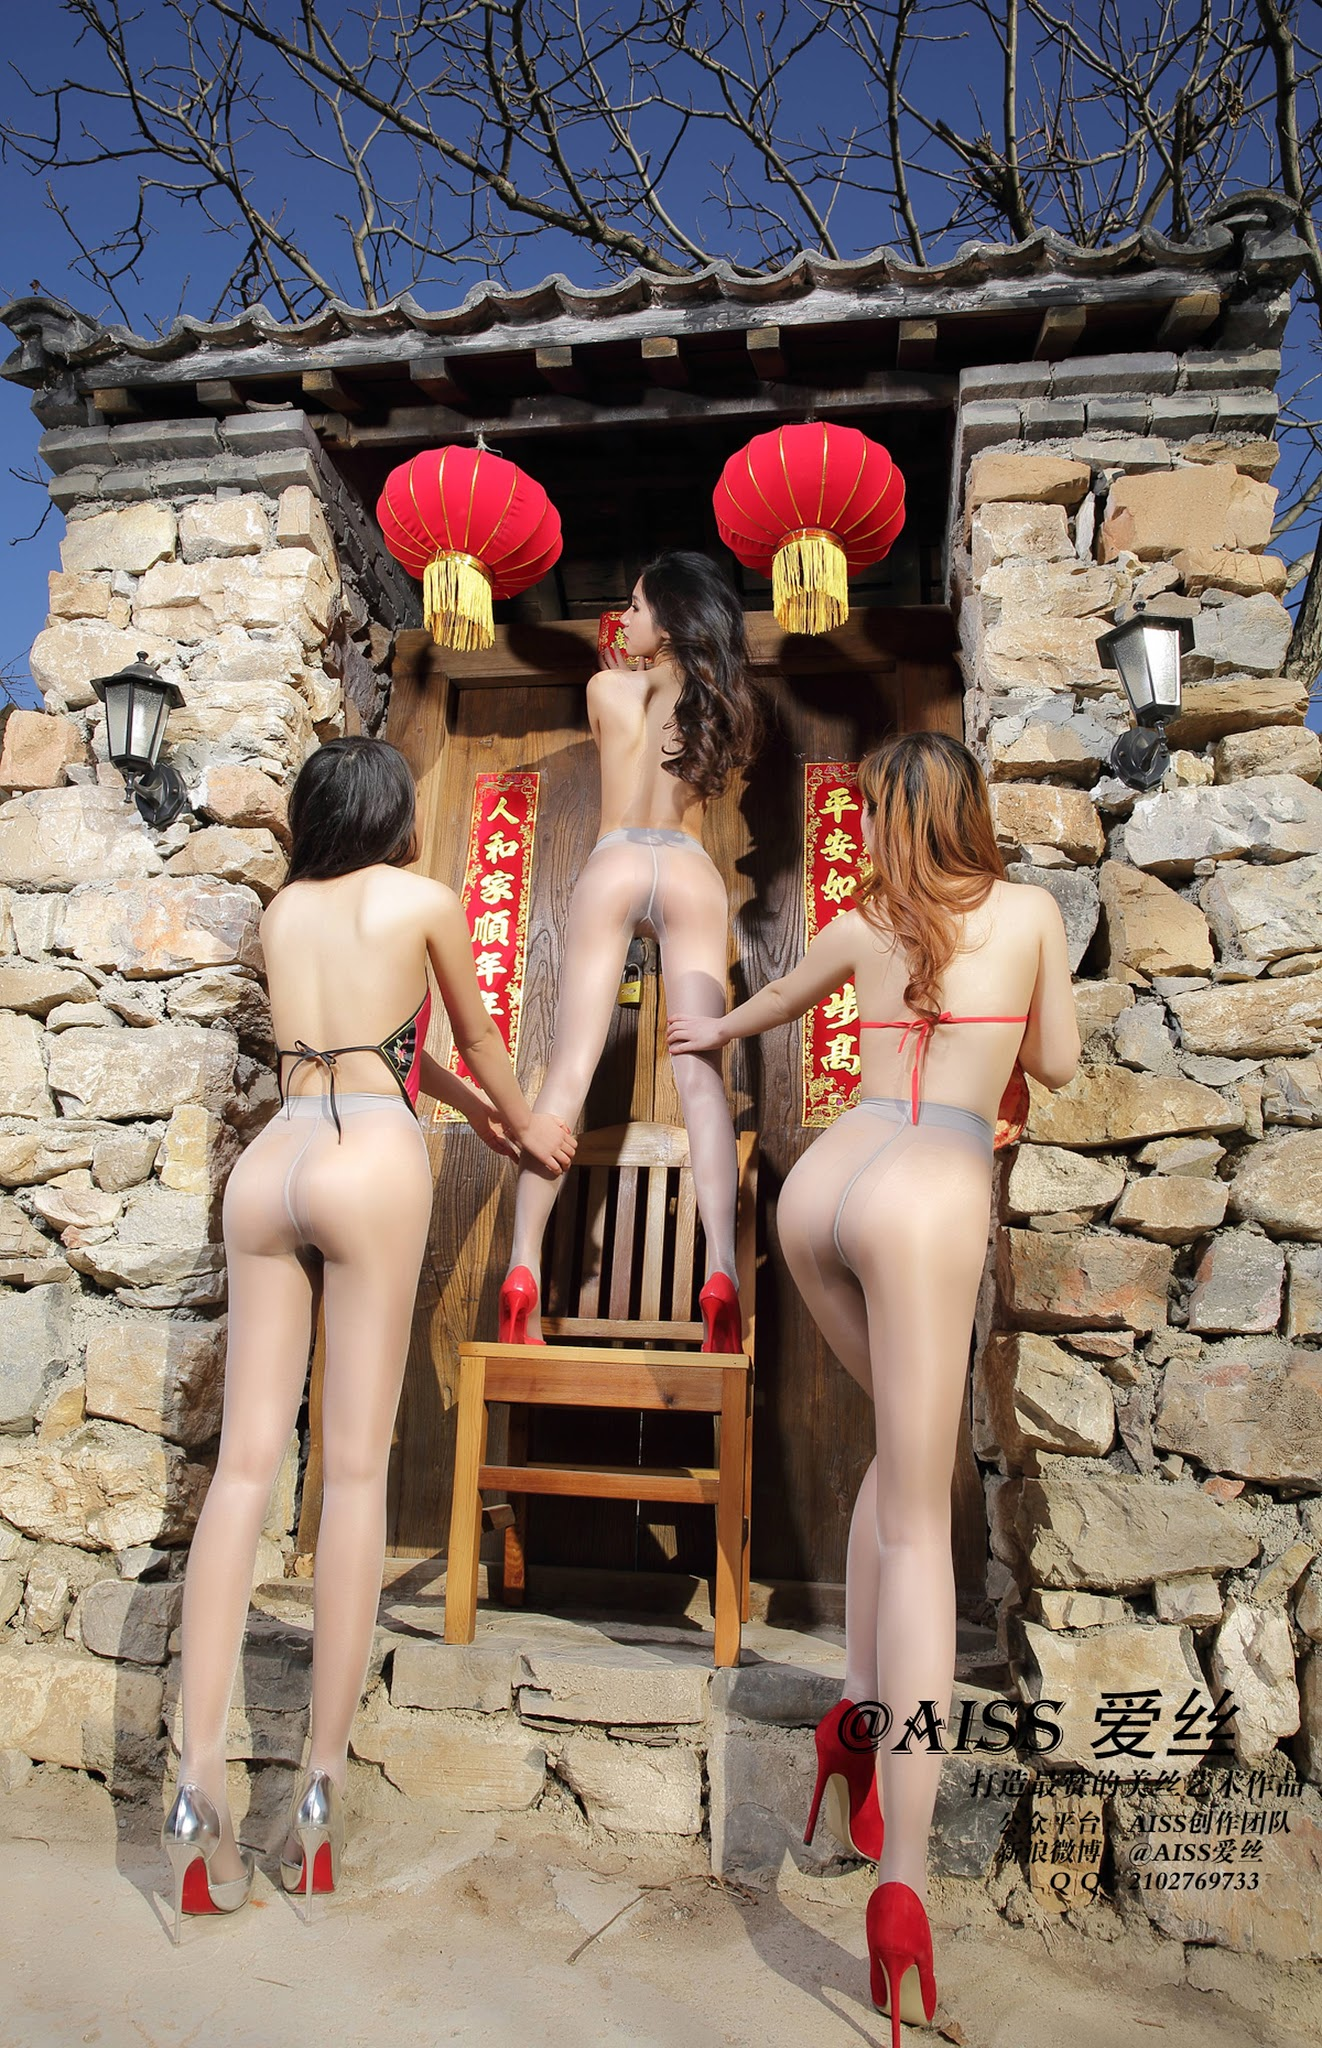 Beautiful Models Naked in Public @ AISS爱丝 SPRING ...